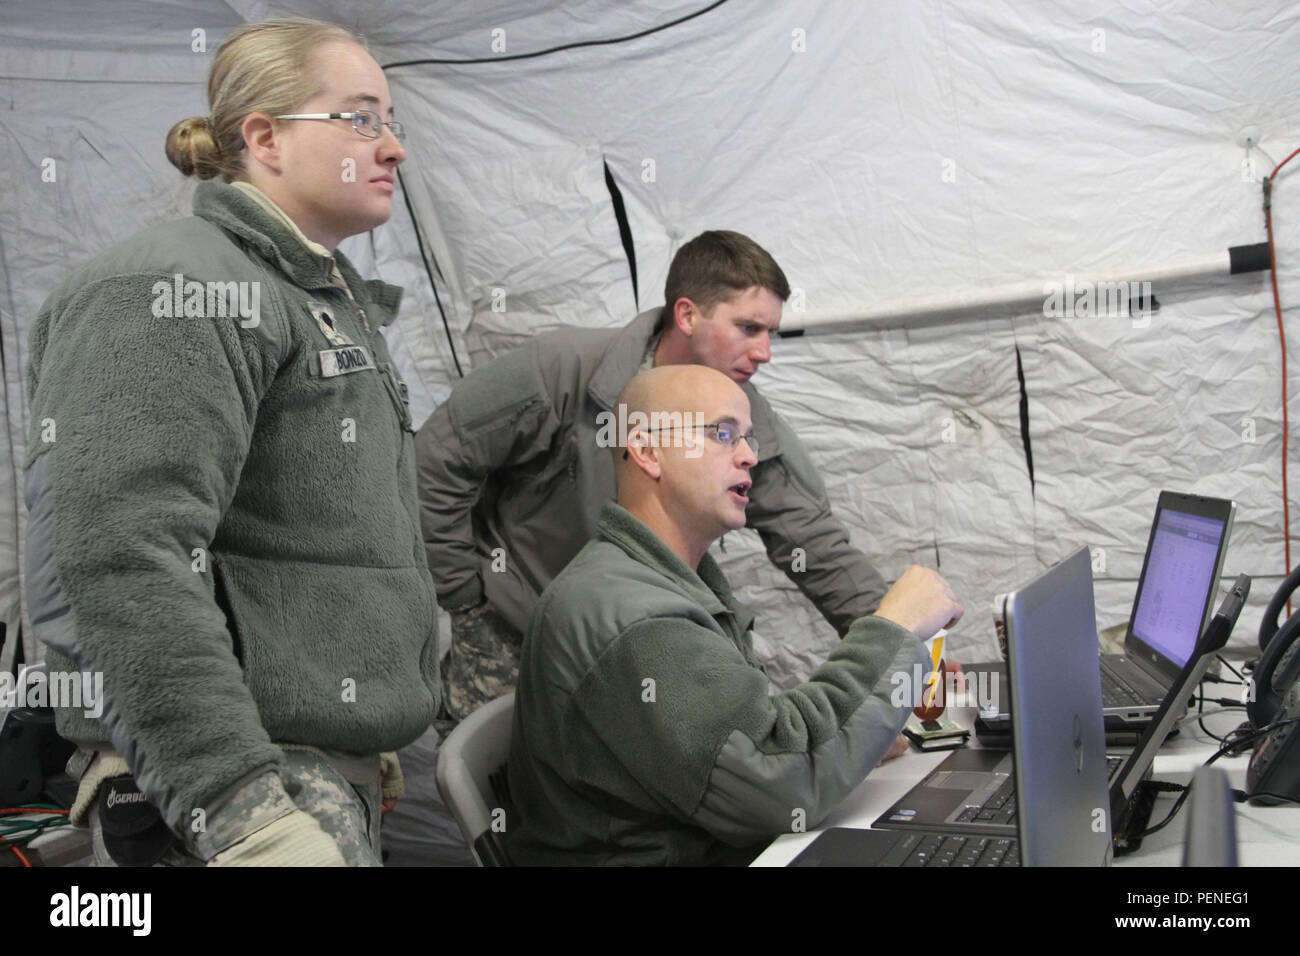 Army National Guard Spc. Tracy Bonzo, Master Sgt. Clifford Julian and Staff Sgt. Brian Carroll work to coordinate and communicate with leaders during a winter emergency response training exercise at the 168th Regiment, Regional Training Institute at Fort Carson, Colo., Jan. 9, 2016. The exercise combined Colorado National Guard forces with civilian authorities across the state to gain skills for quick and efficient emergency response. Stock Photo